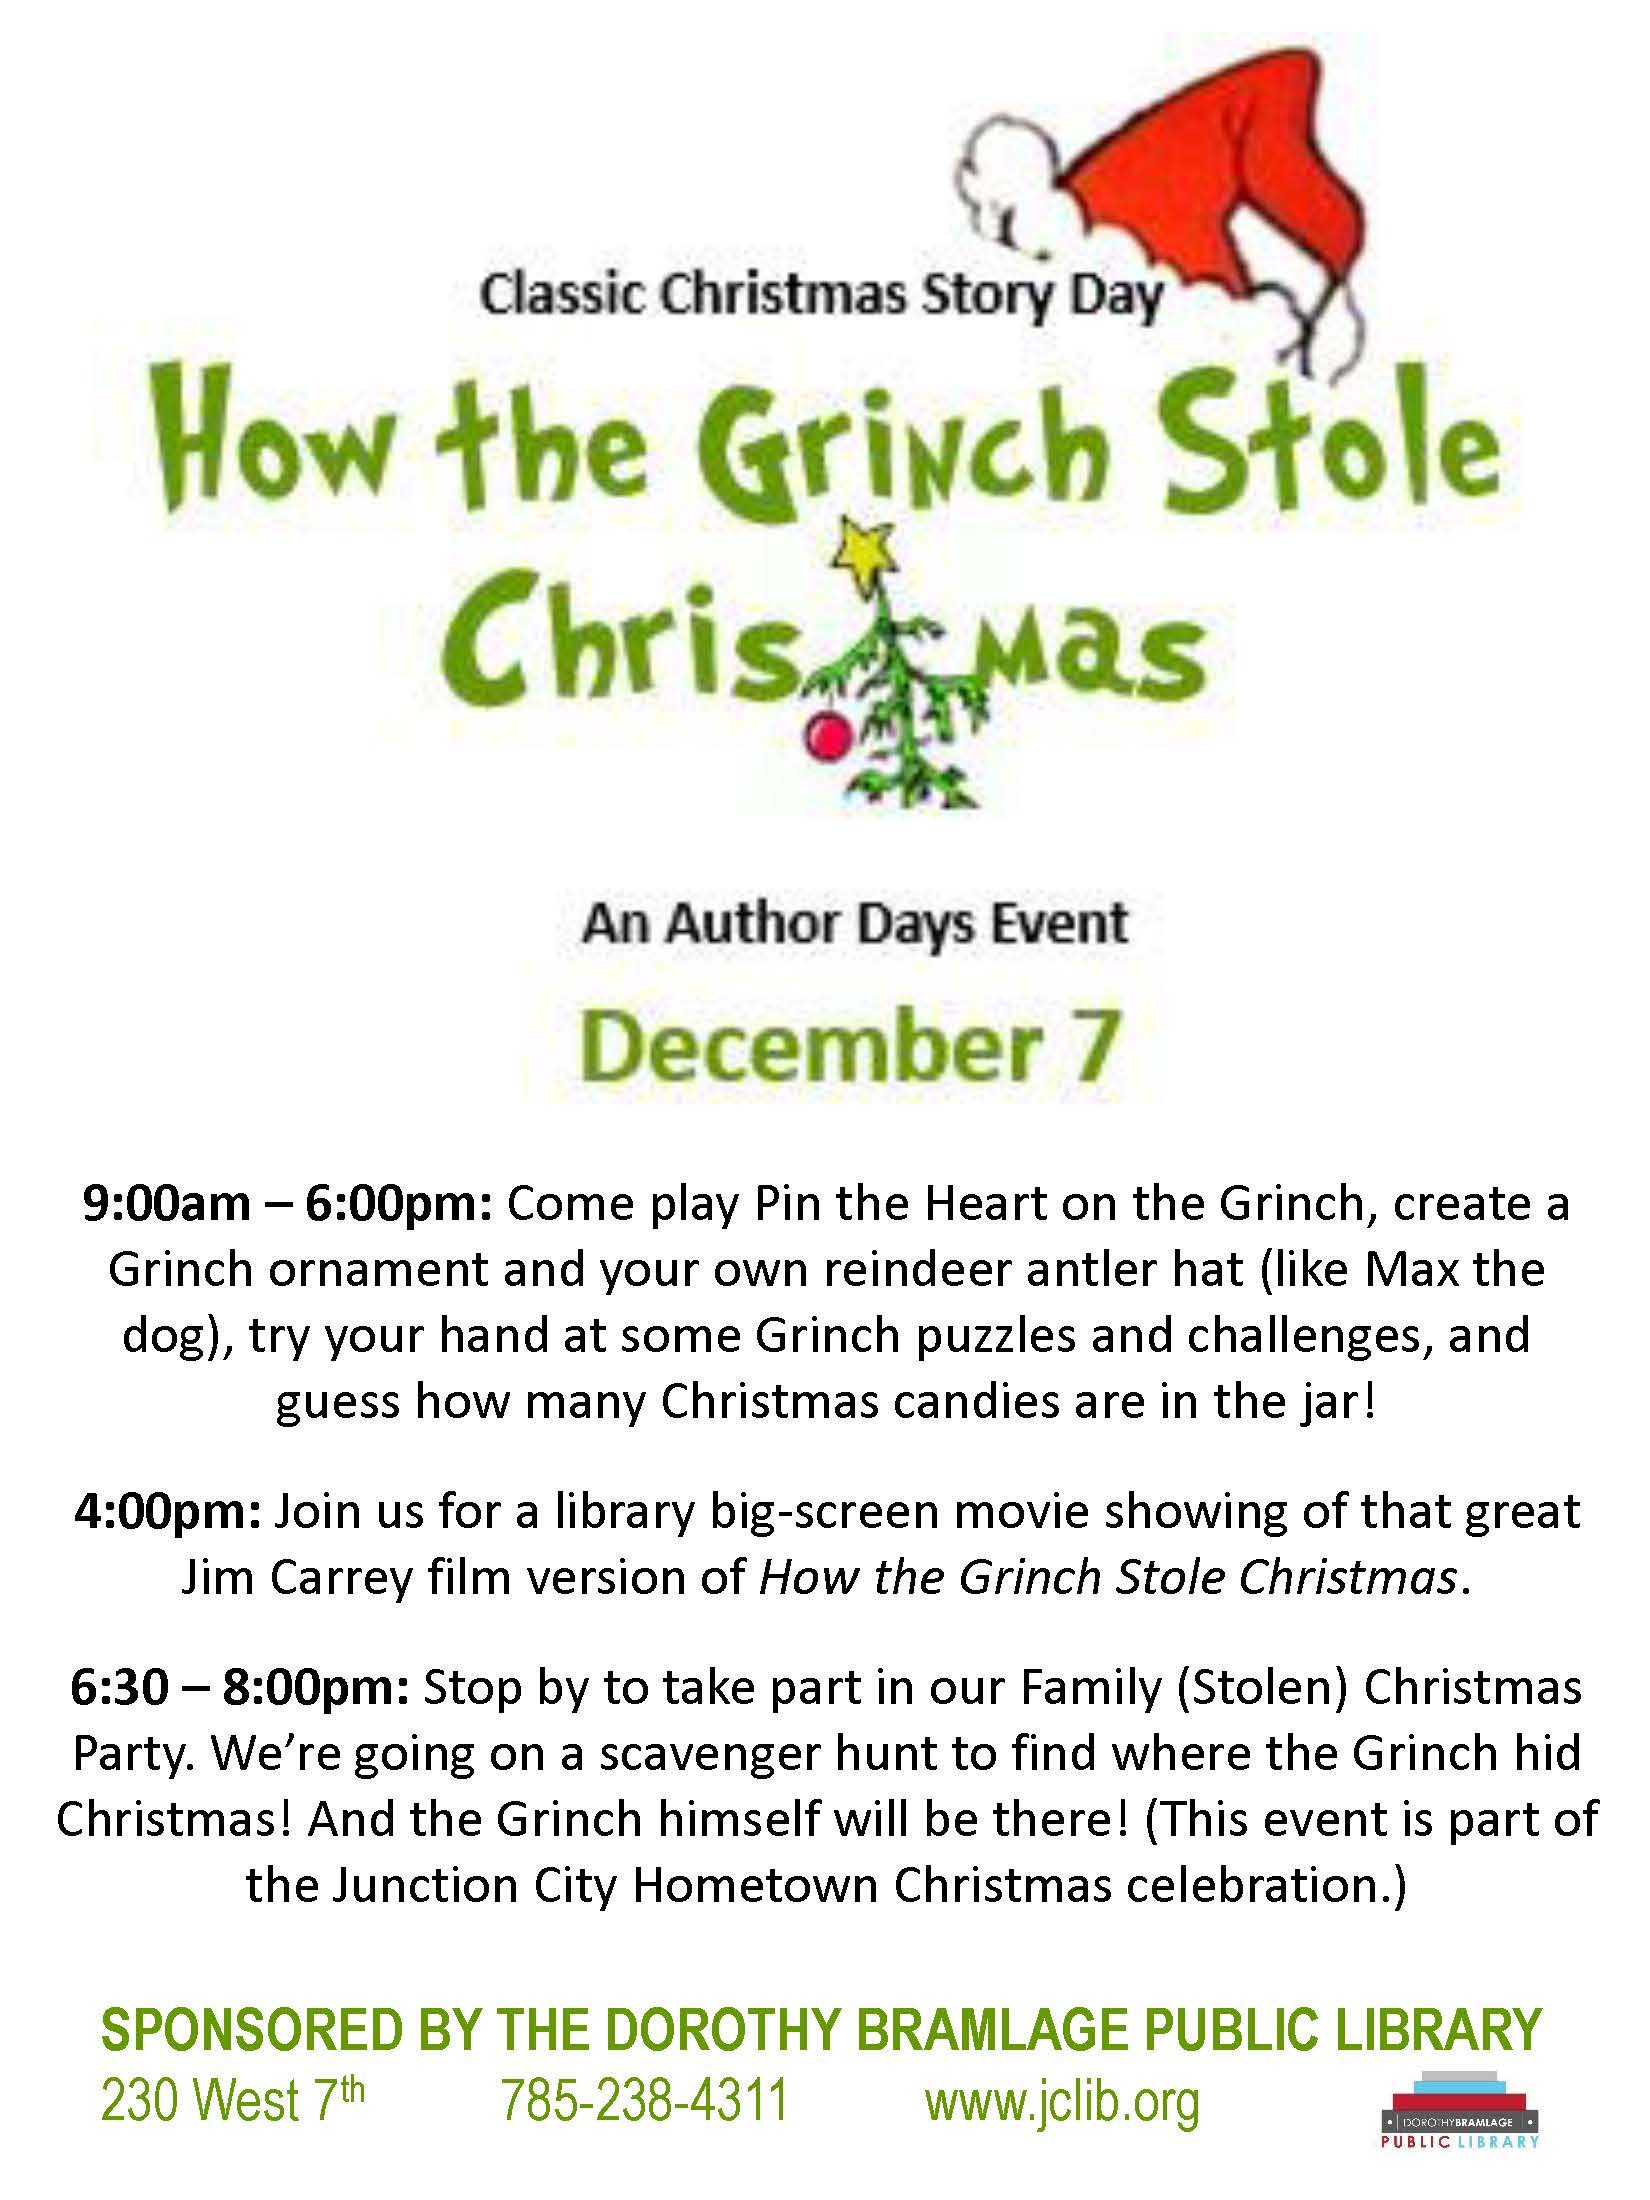 Flyer for How the Grinch Stole Christmas Story Day. All information is above.